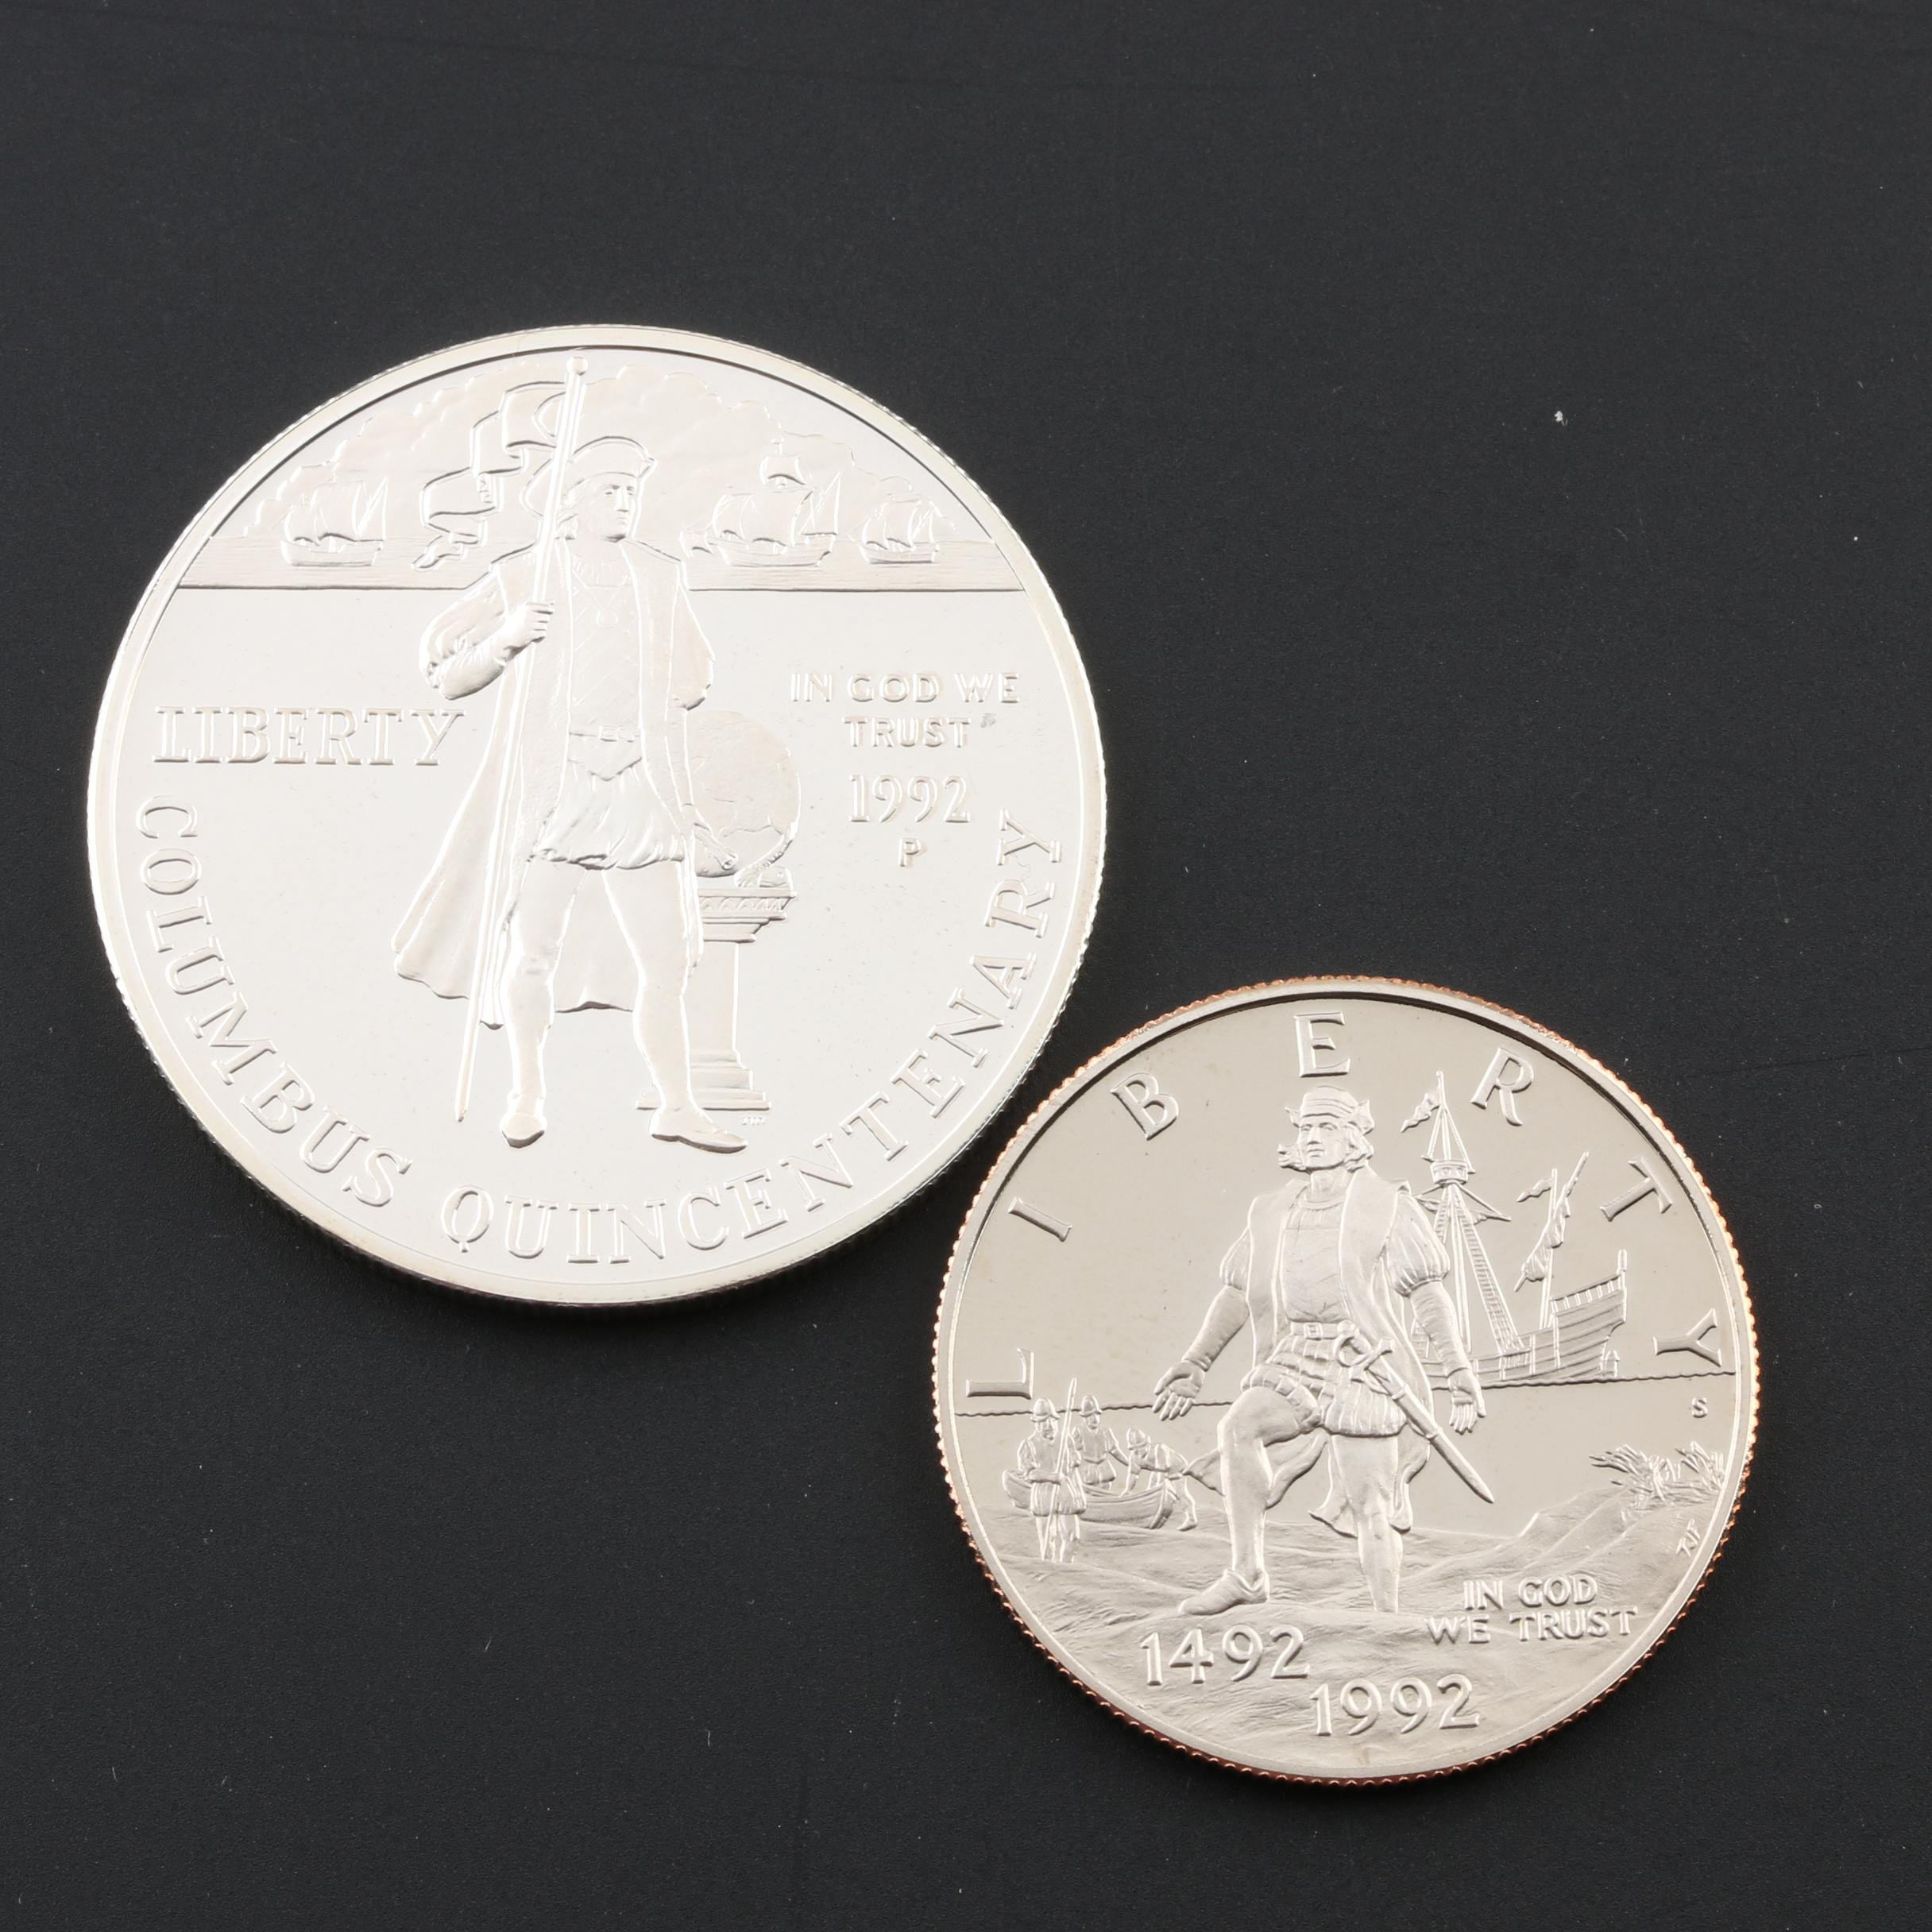 1992 Christopher Columbus Commemorative Half Dollar and Silver Dollar